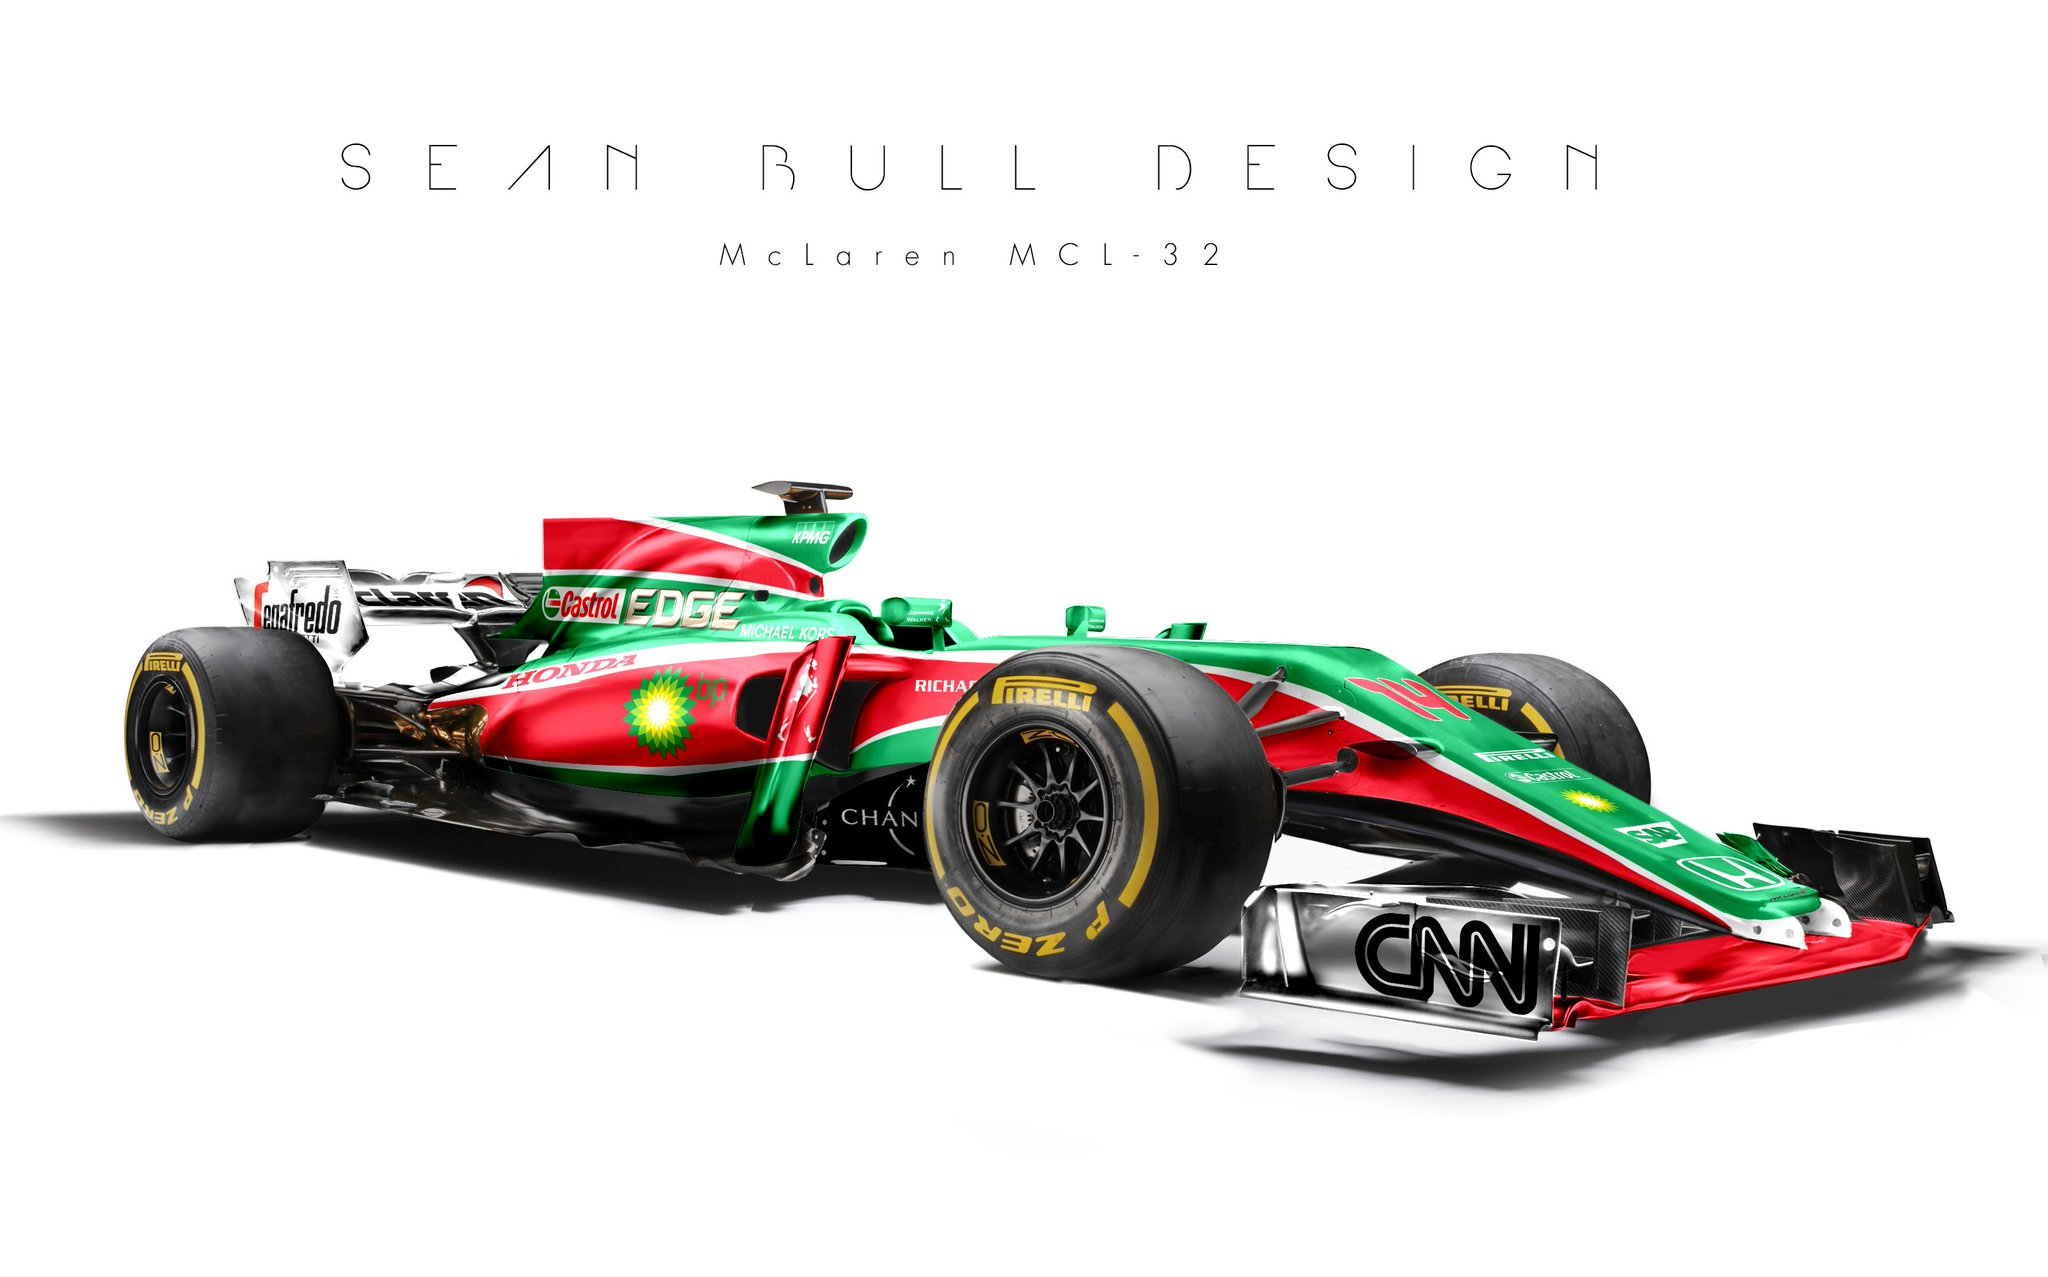 Sean Bull Design On Twitter Quot How About A Castrol Livery